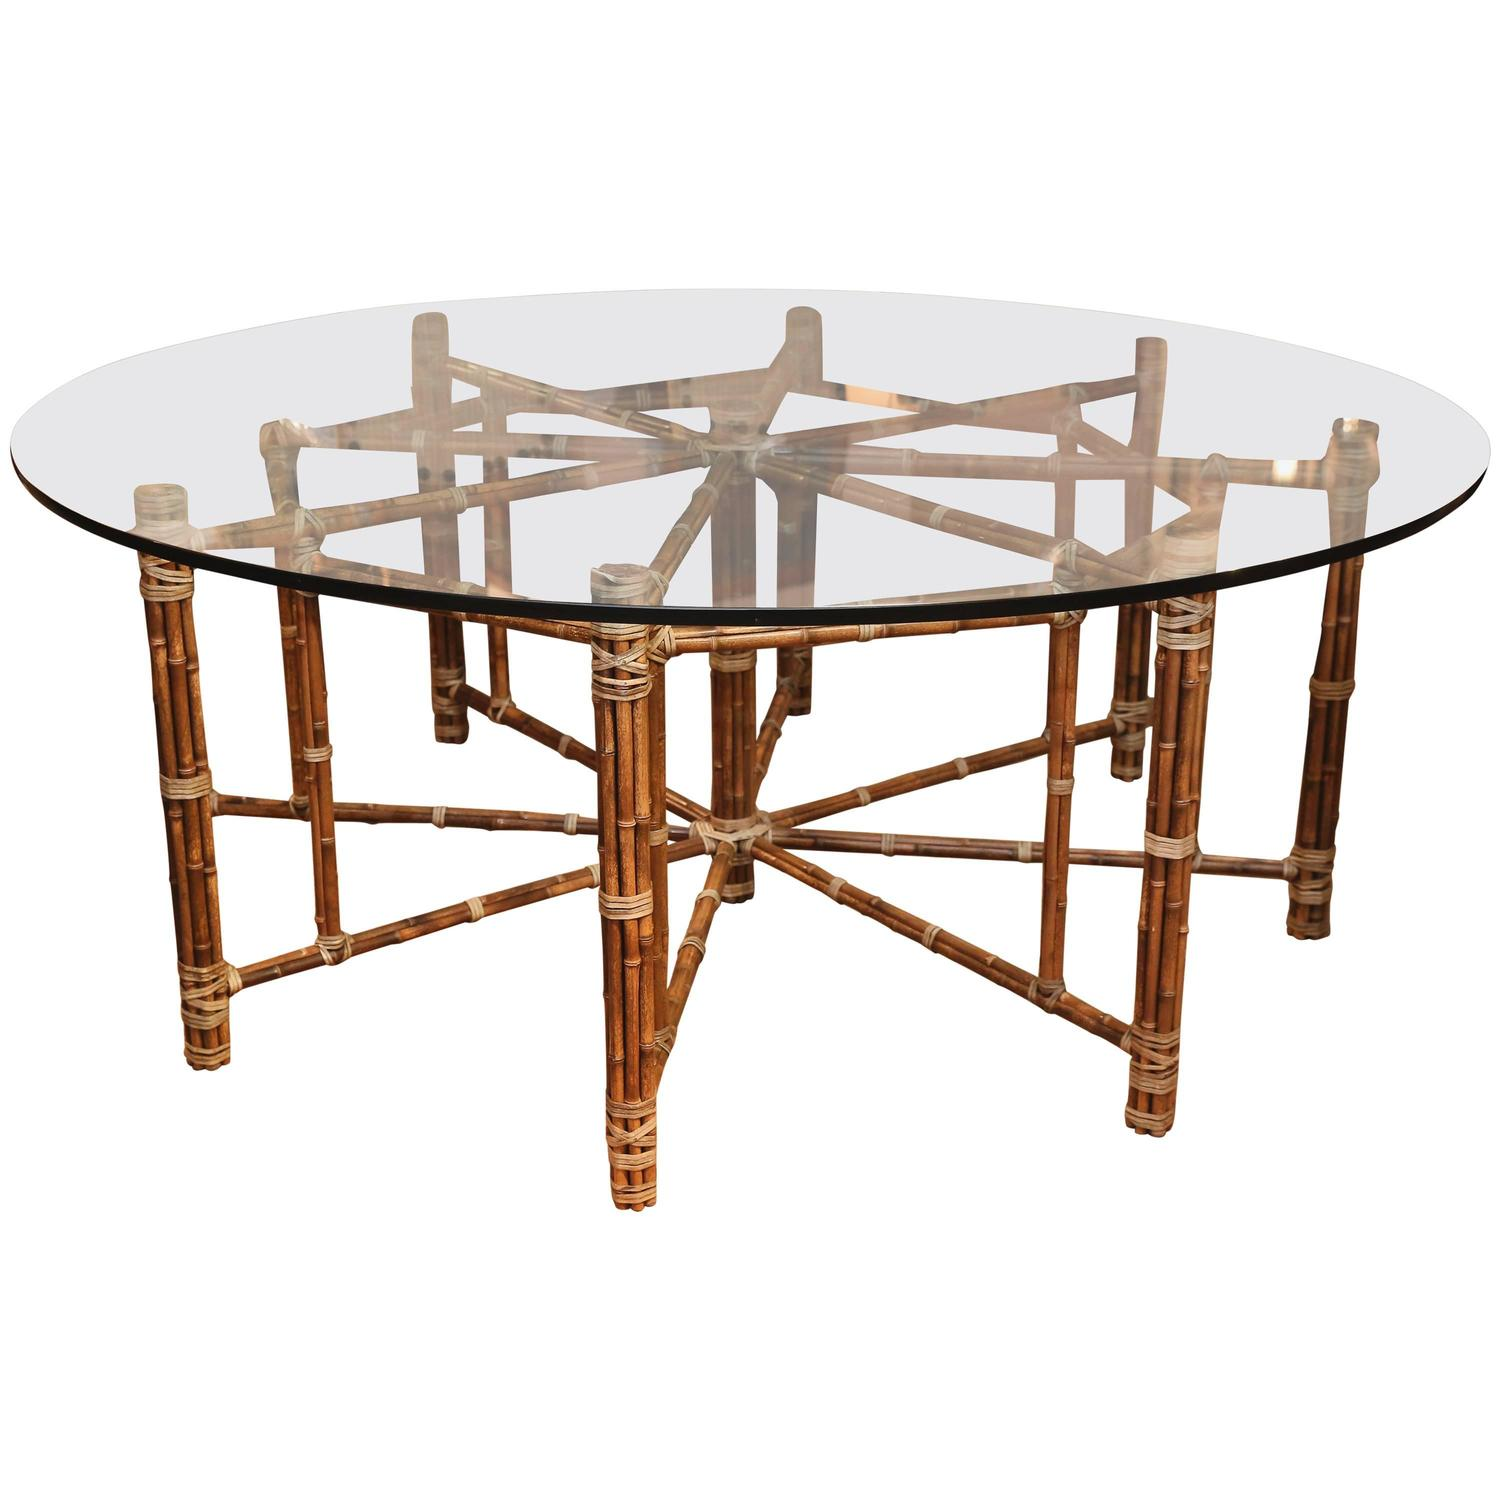 Awesome Round Dining Table Malta Light of Dining Room : 6874623z from lightofdiningroom.com size 1500 x 1500 jpeg 104kB